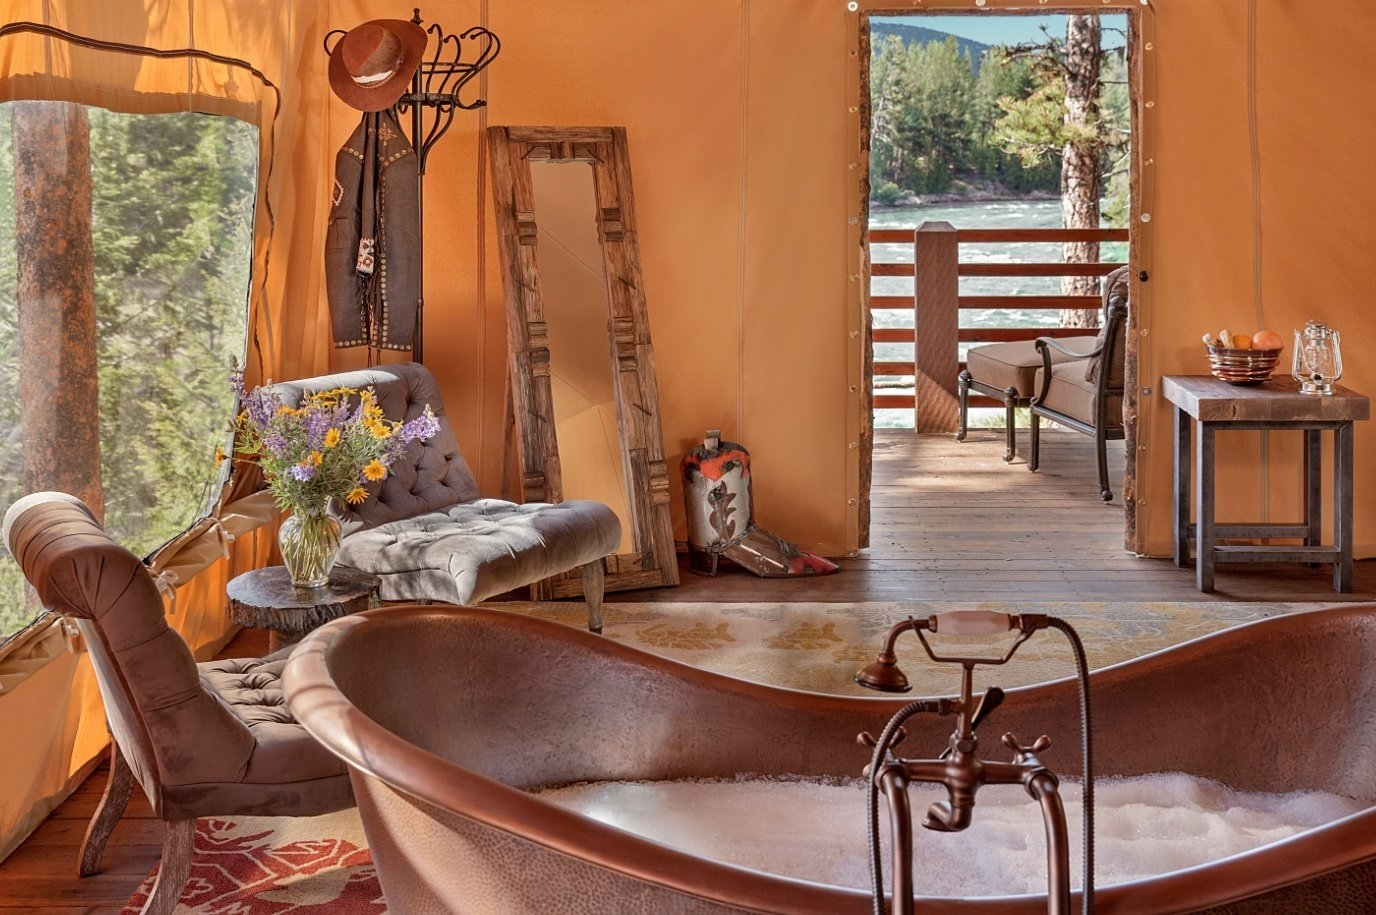 Outdoor, Woodland, Trees, Horizontal Fences, Wall, Decking Patio, Porch, Deck, and Wood Patio, Porch, Deck At this sprawling resort just east of Missoula, honeymooning couples can choose between six glamping tents, each fitted with a king bed, jetted tubs/showers, and luxury resort amenities. Honeymooners will definitely want to book the Tango Point tent. In addition to its prime location along the banks of the scenic Blackfoot River, the suite comes with heated slate floors, a dining pavilion with fireplace and lounge, plus your very own camping butler.  Photo 6 of 14 in 12 Terrifically Glamorous Camping Options